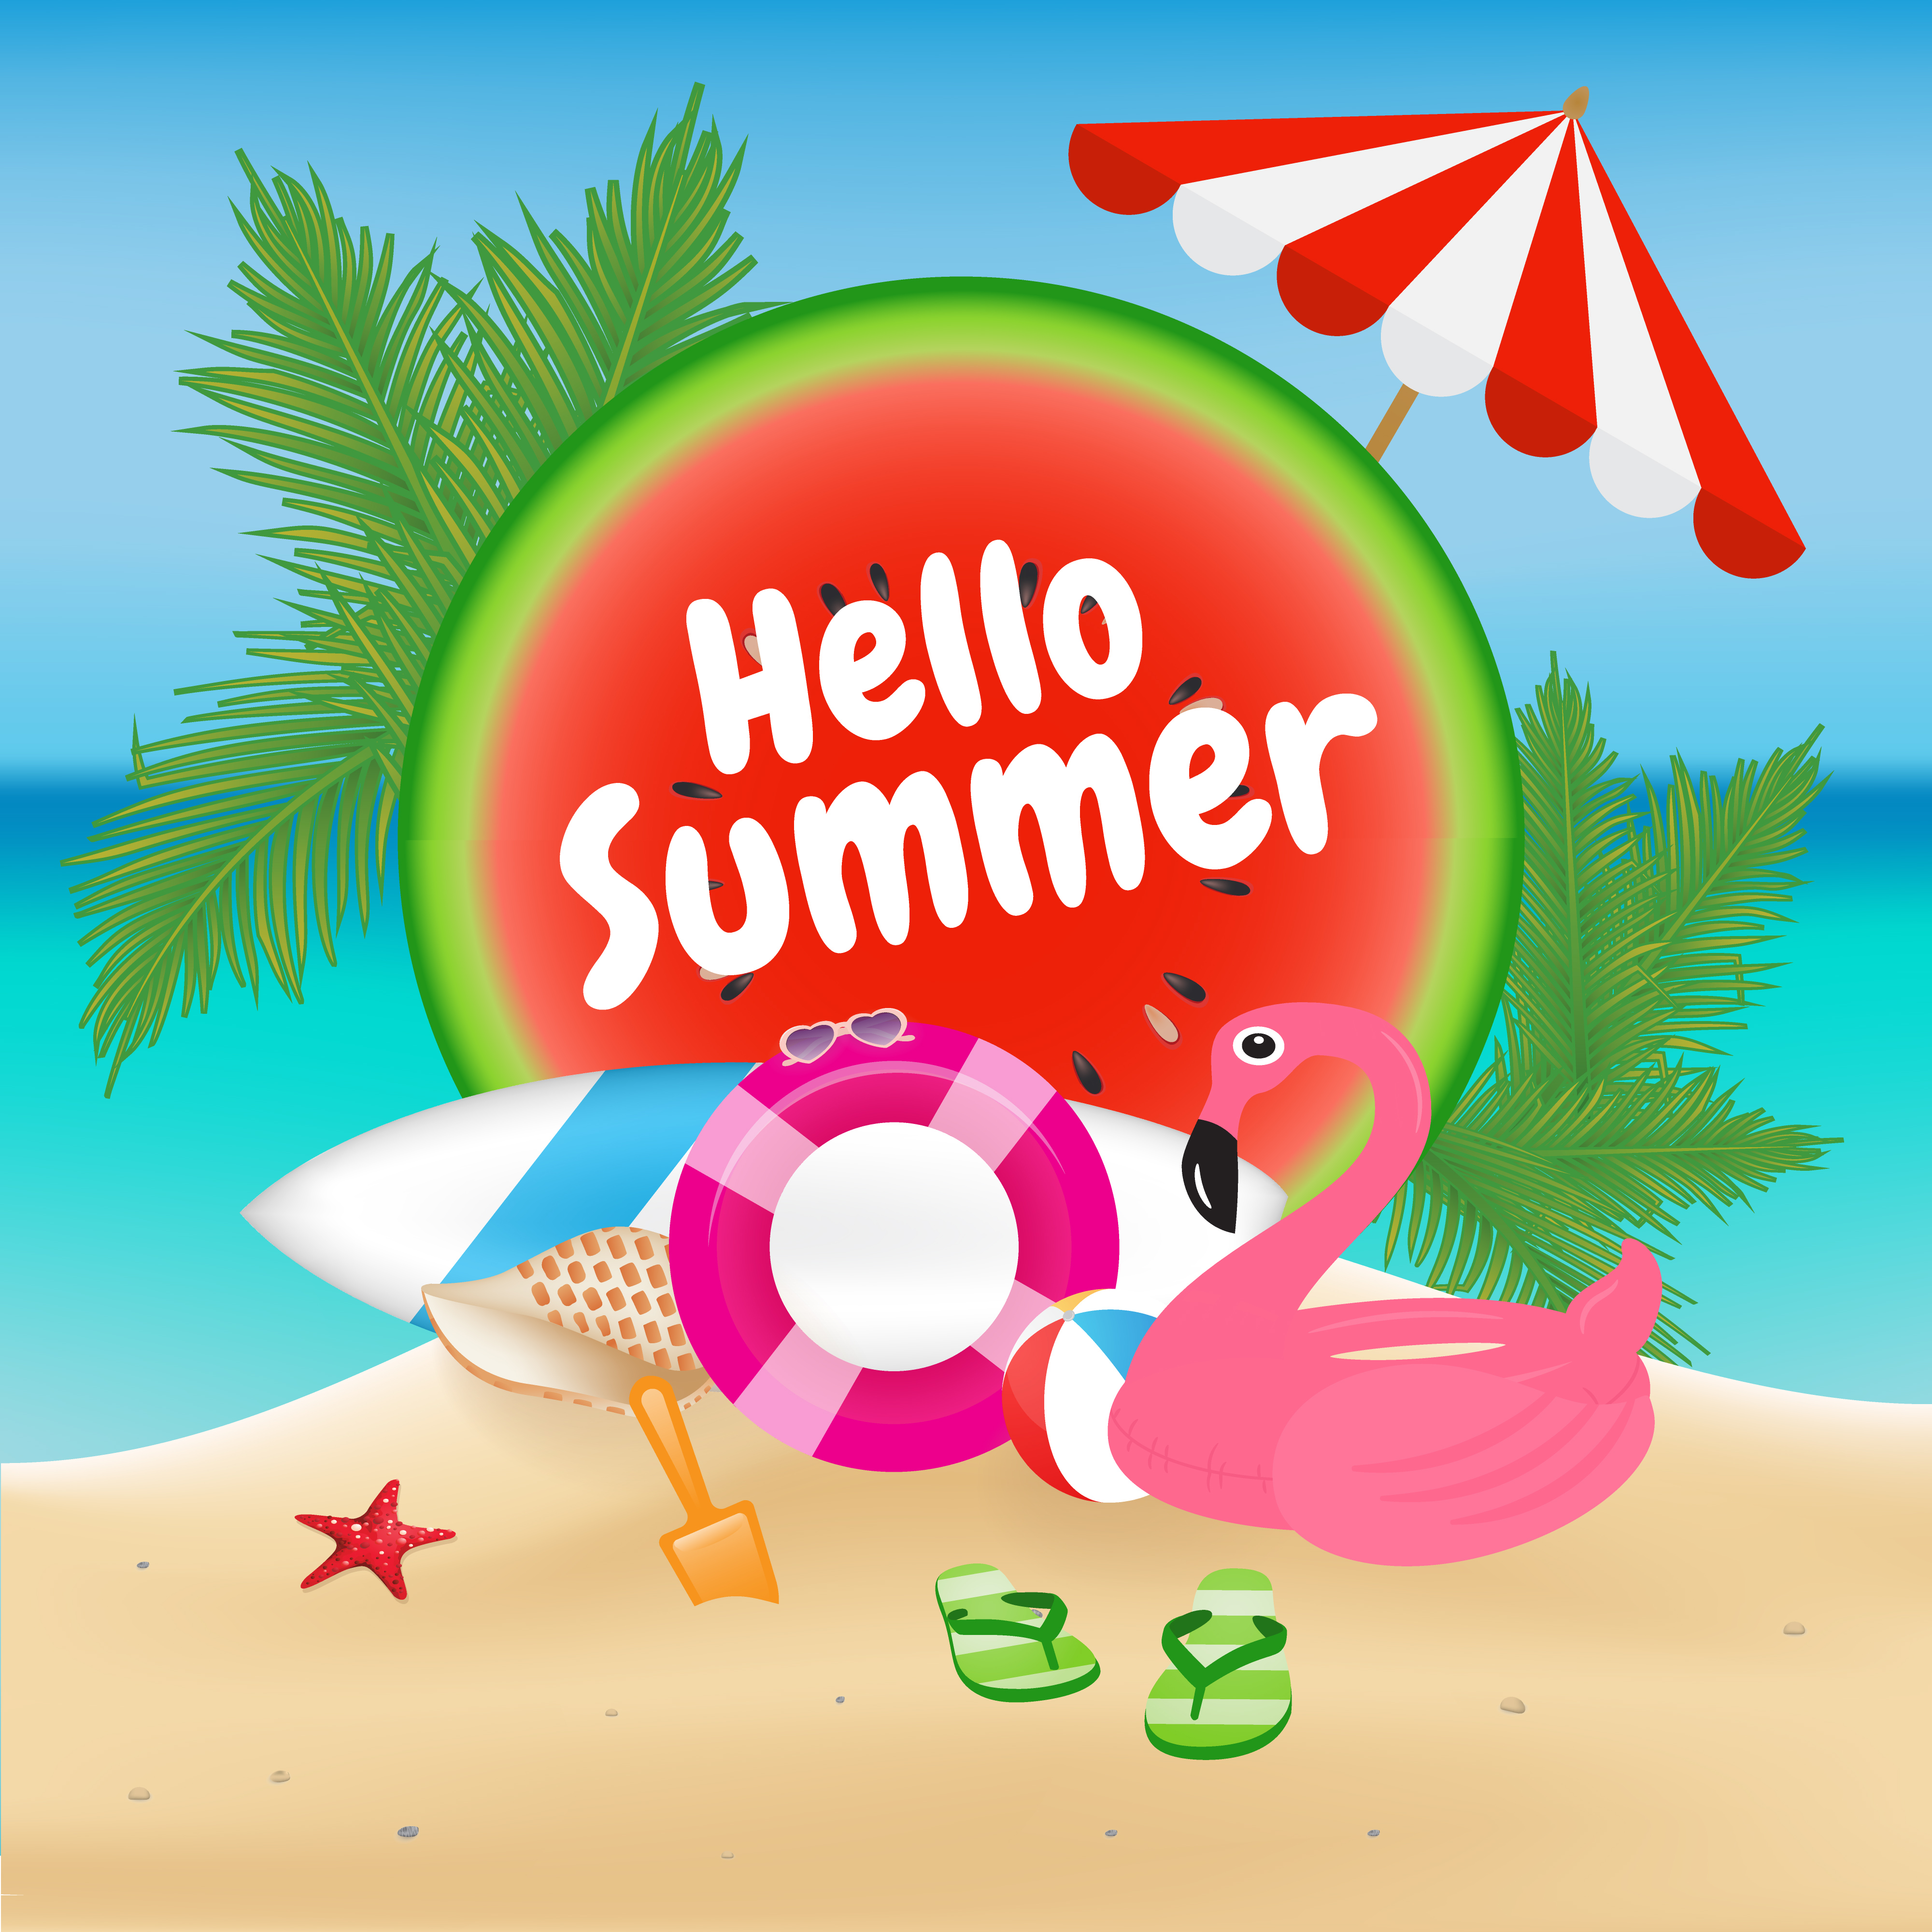 Hello Summer Season Background And Objects Design With